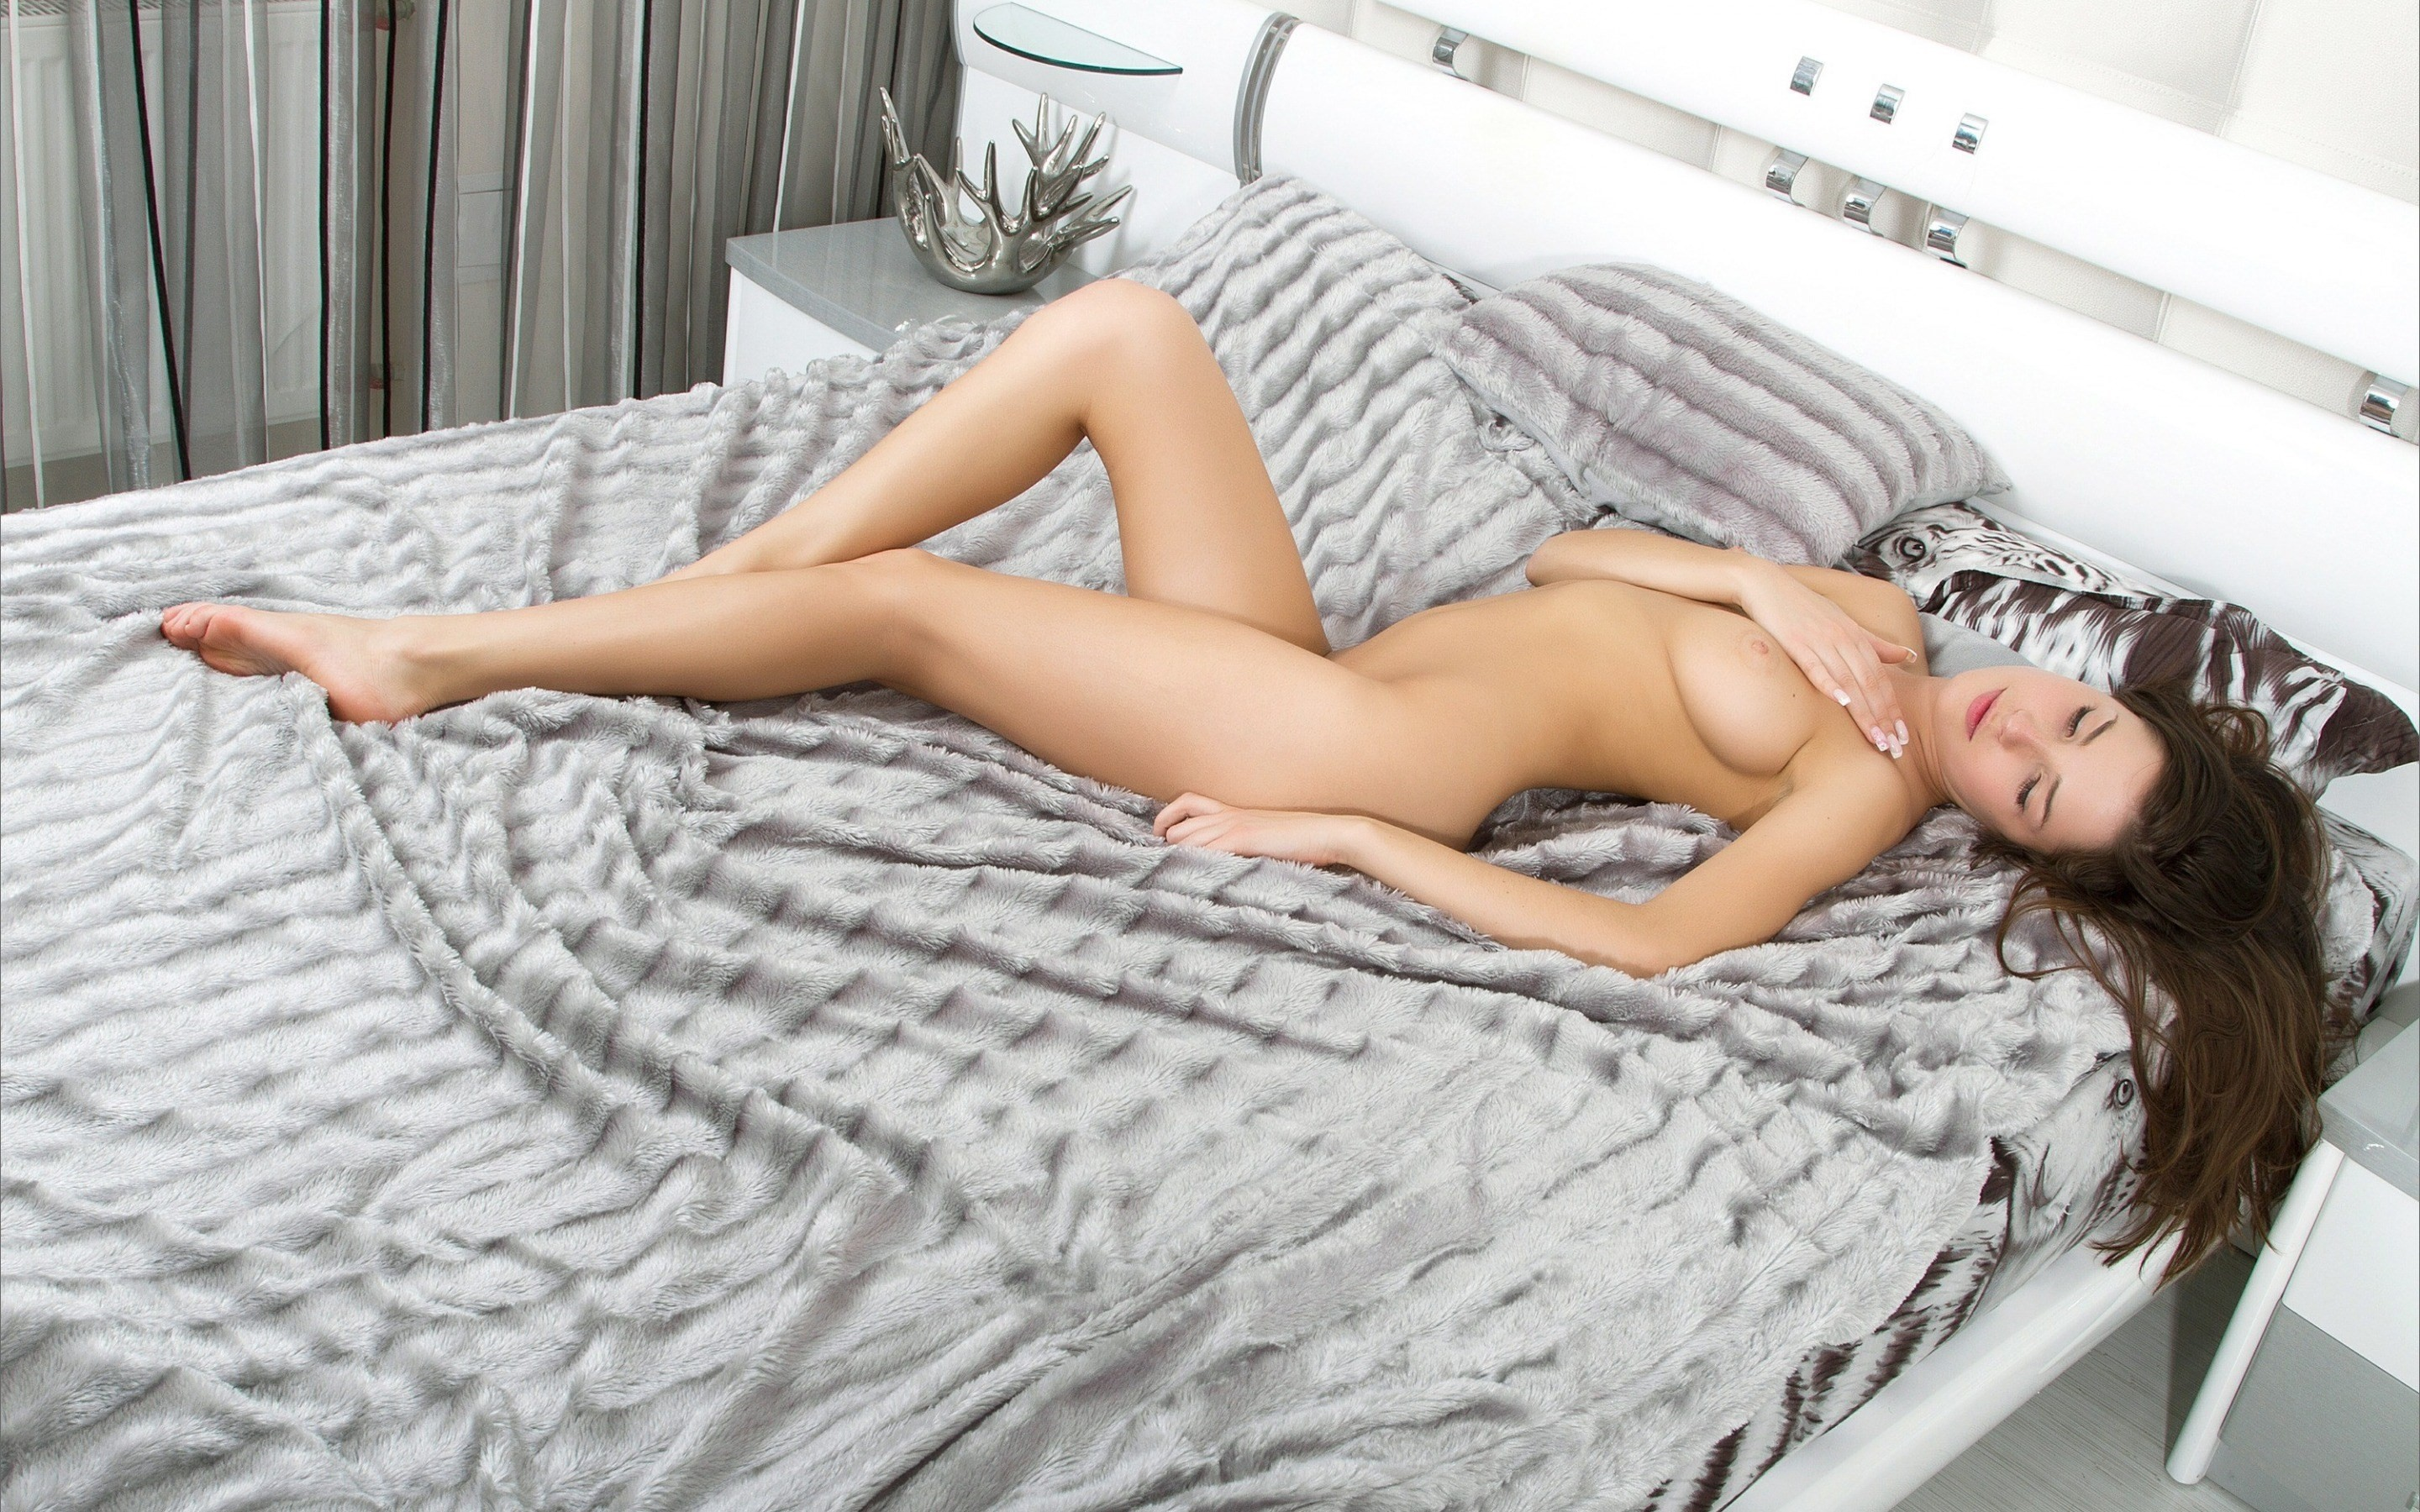 naked-girls-in-bedroom-nude-mix-vol4-64